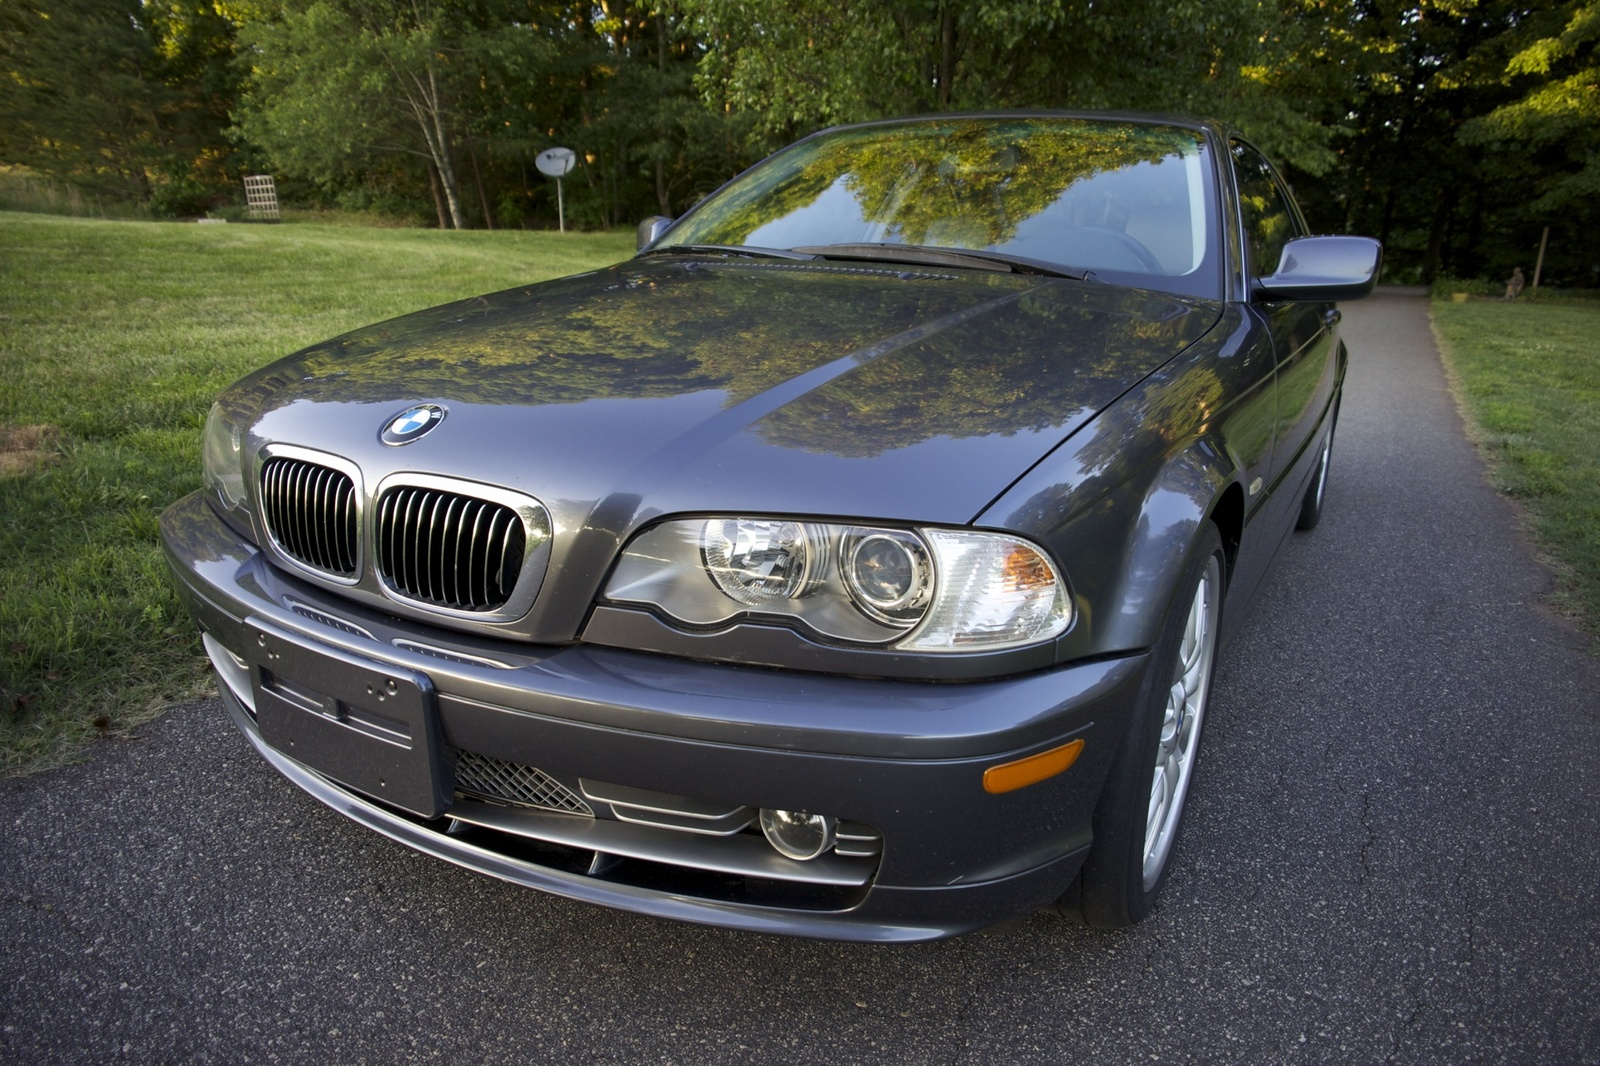 BMW 3 series 330Ci 2002 photo - 8